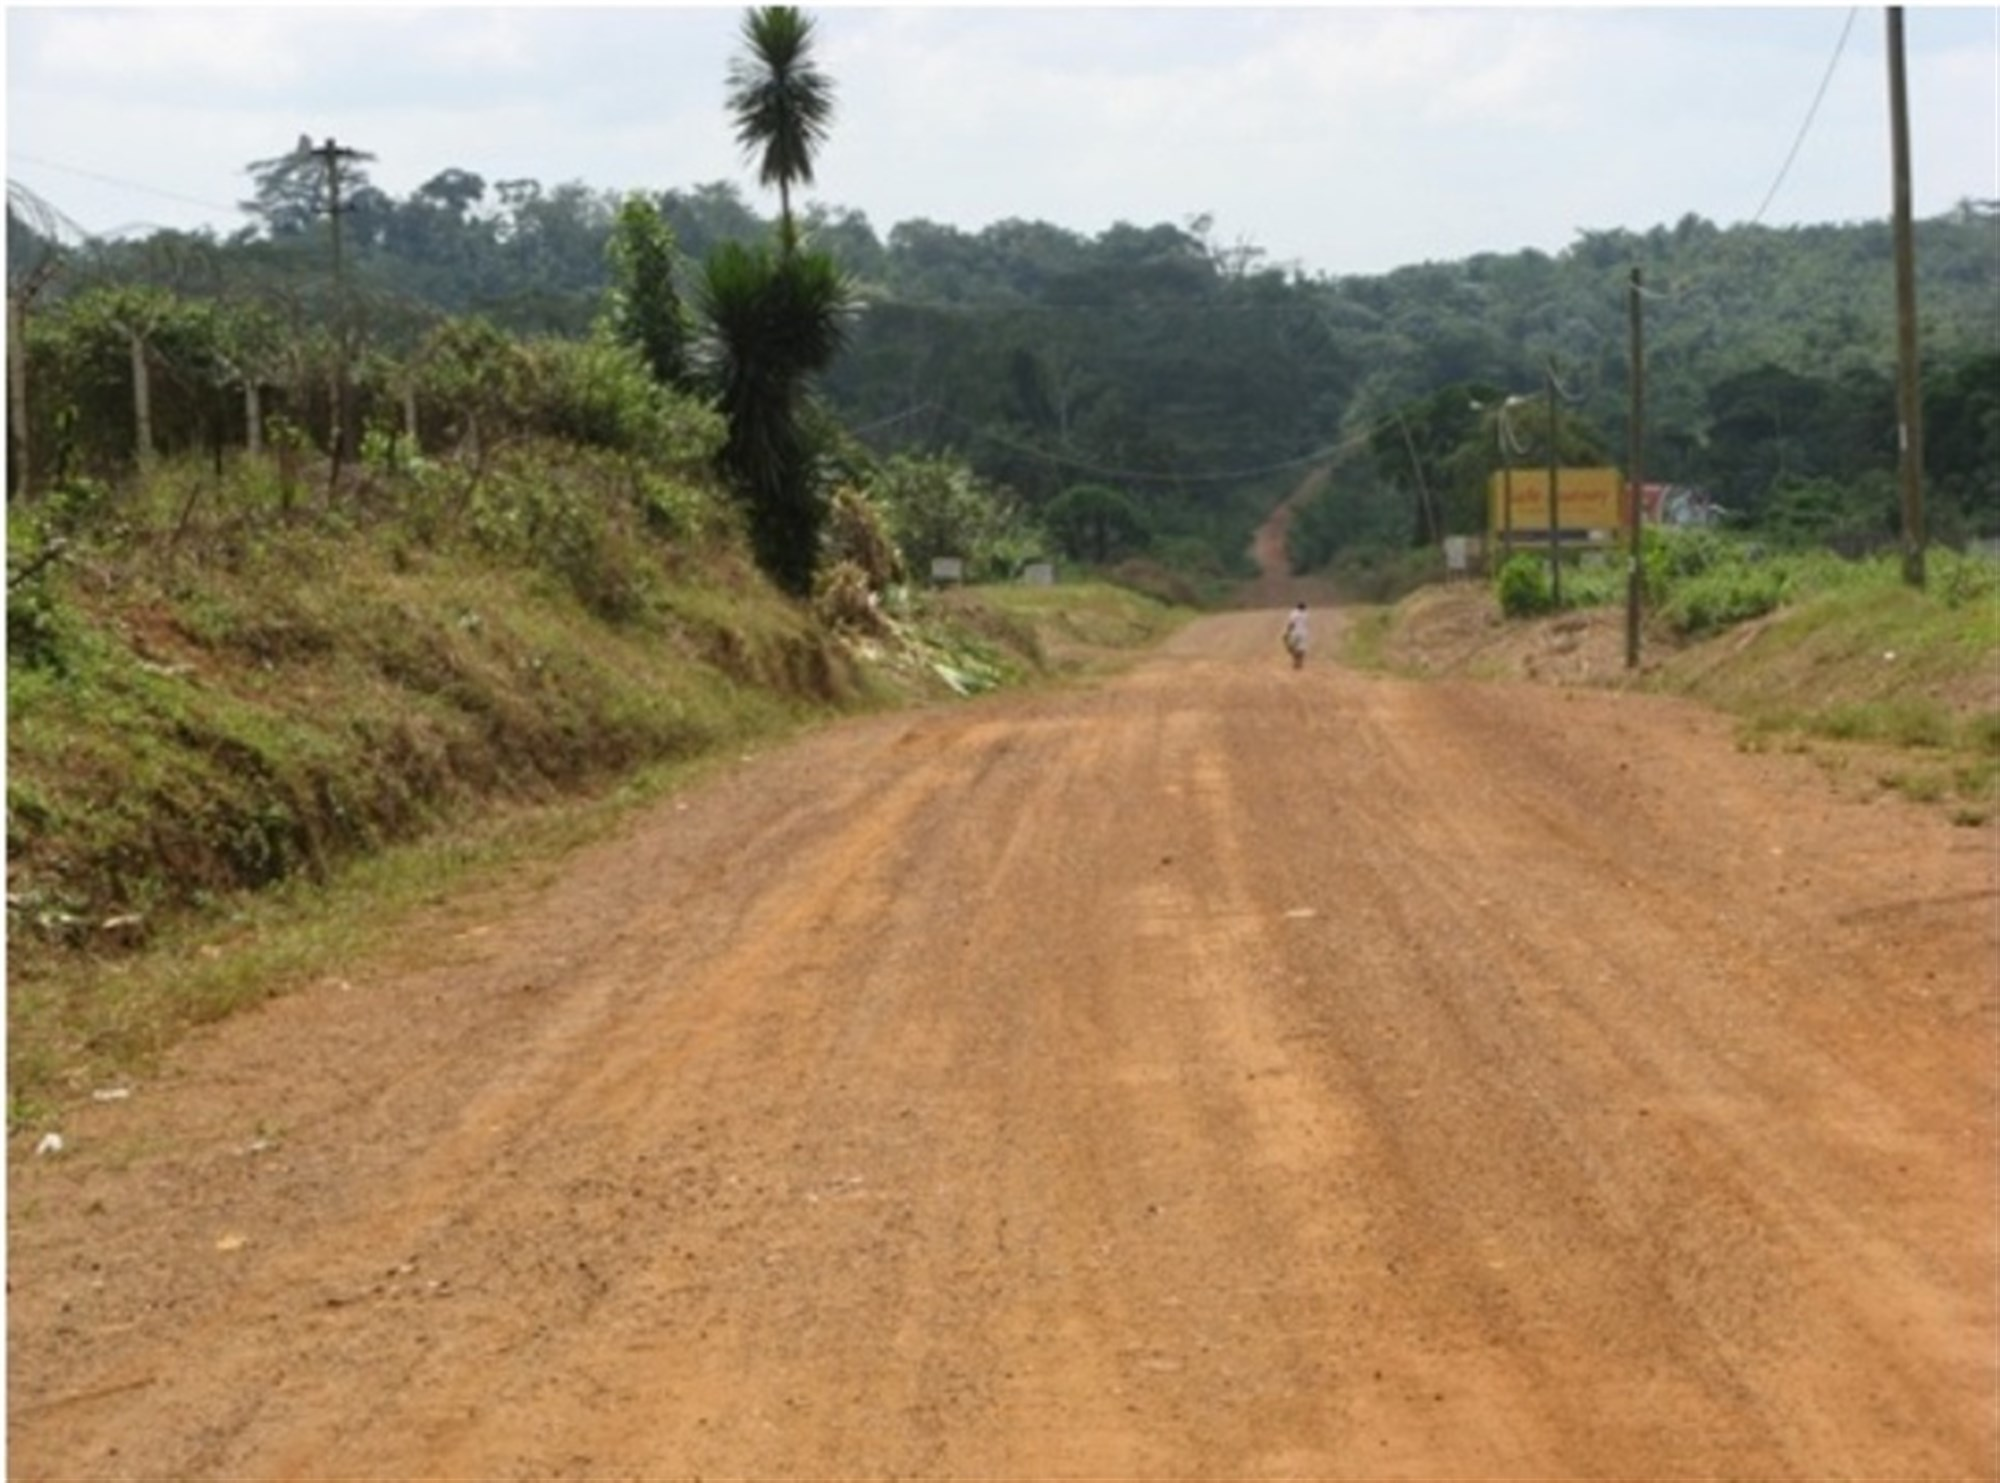 A typical unimproved road in Liberia creates a challenge for logisticians. Deliberate planning and actions across the entire logistics enterprise united the efforts of a multi-disciplined, interagency team formed across nations, governments and non-government organizations (NGOs) which directly led to success in OPERATION United Assistance. (U.S. AFRICOM photo/released)